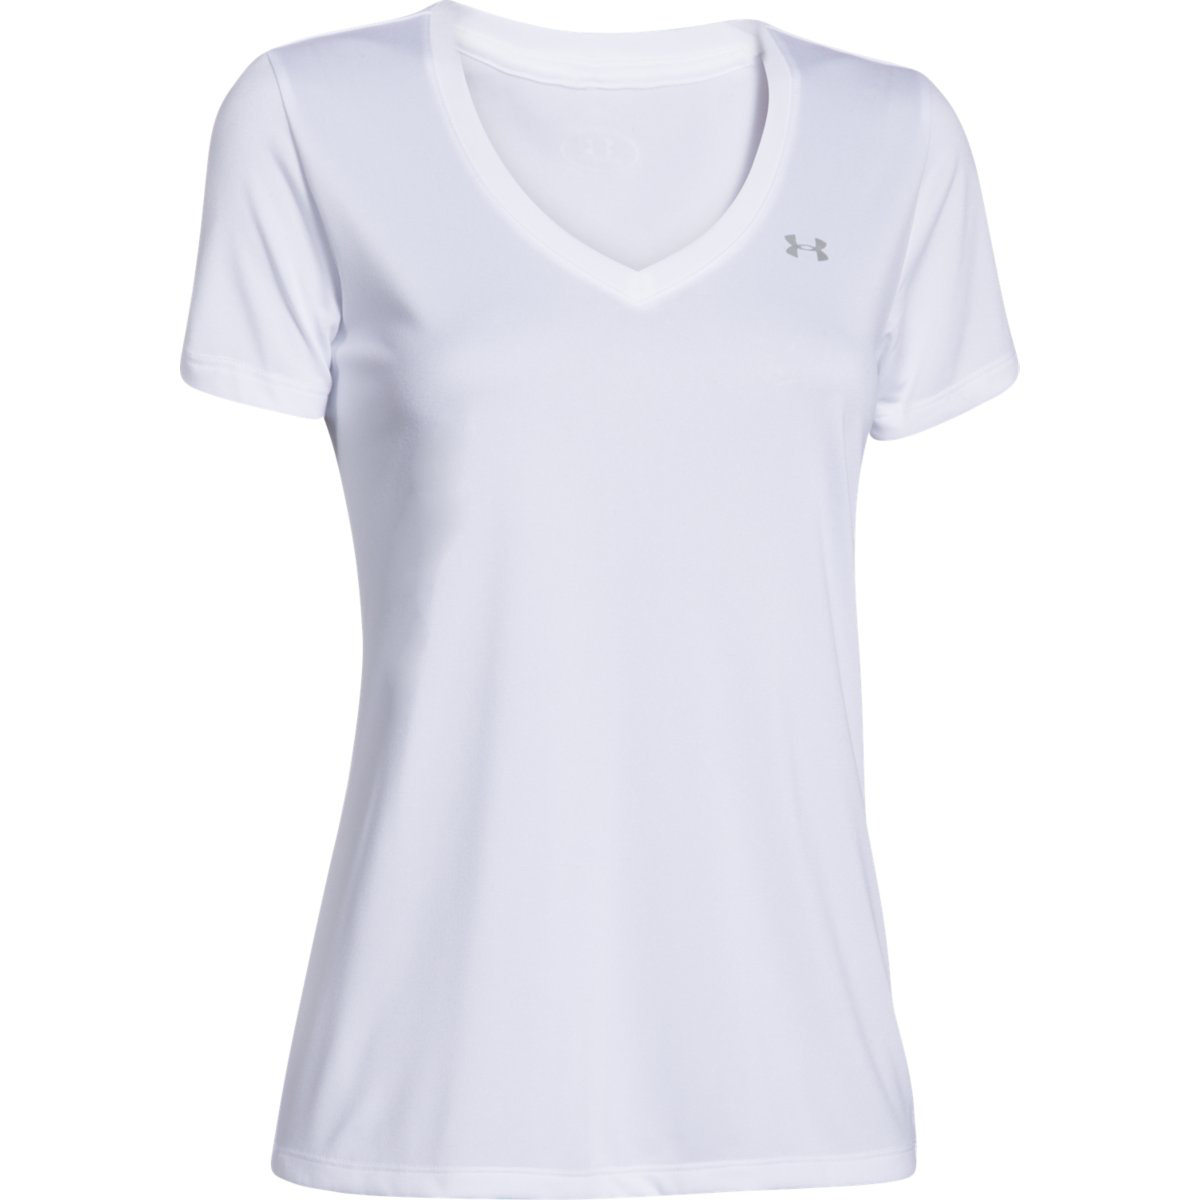 Under Armour Women's Ua Tech V-Neck Tee - White, S